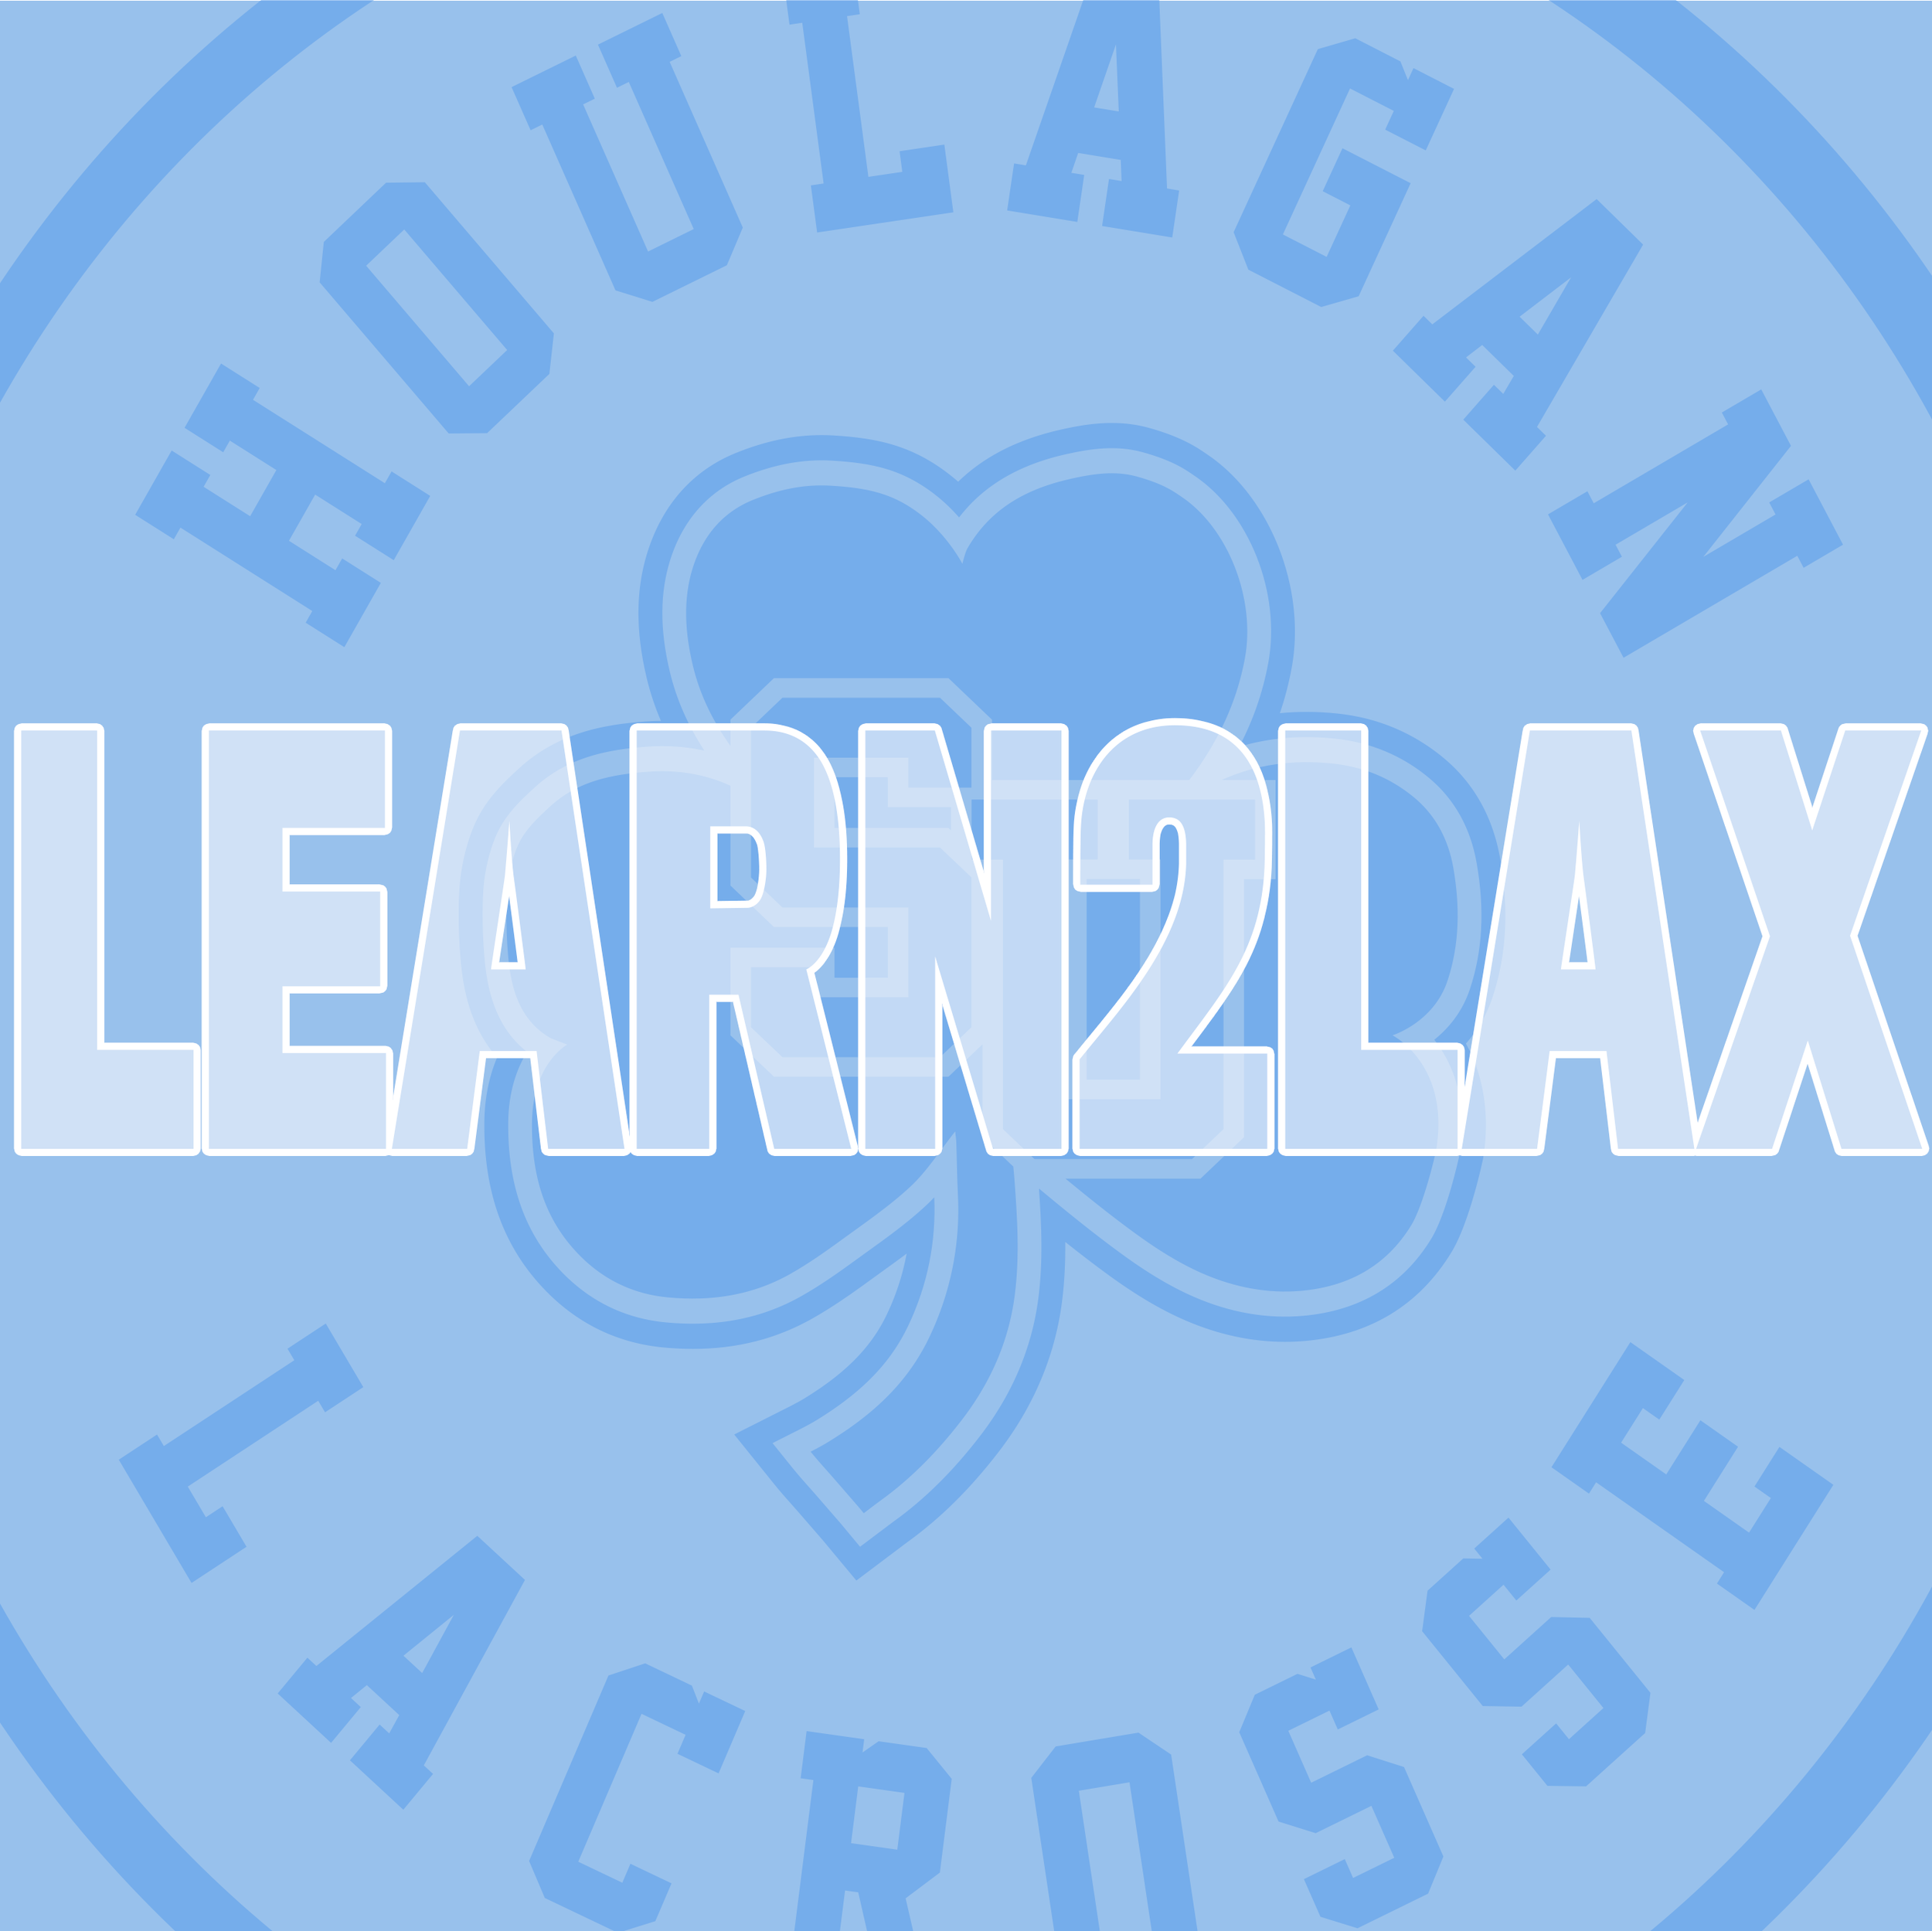 Learn2Lax.png